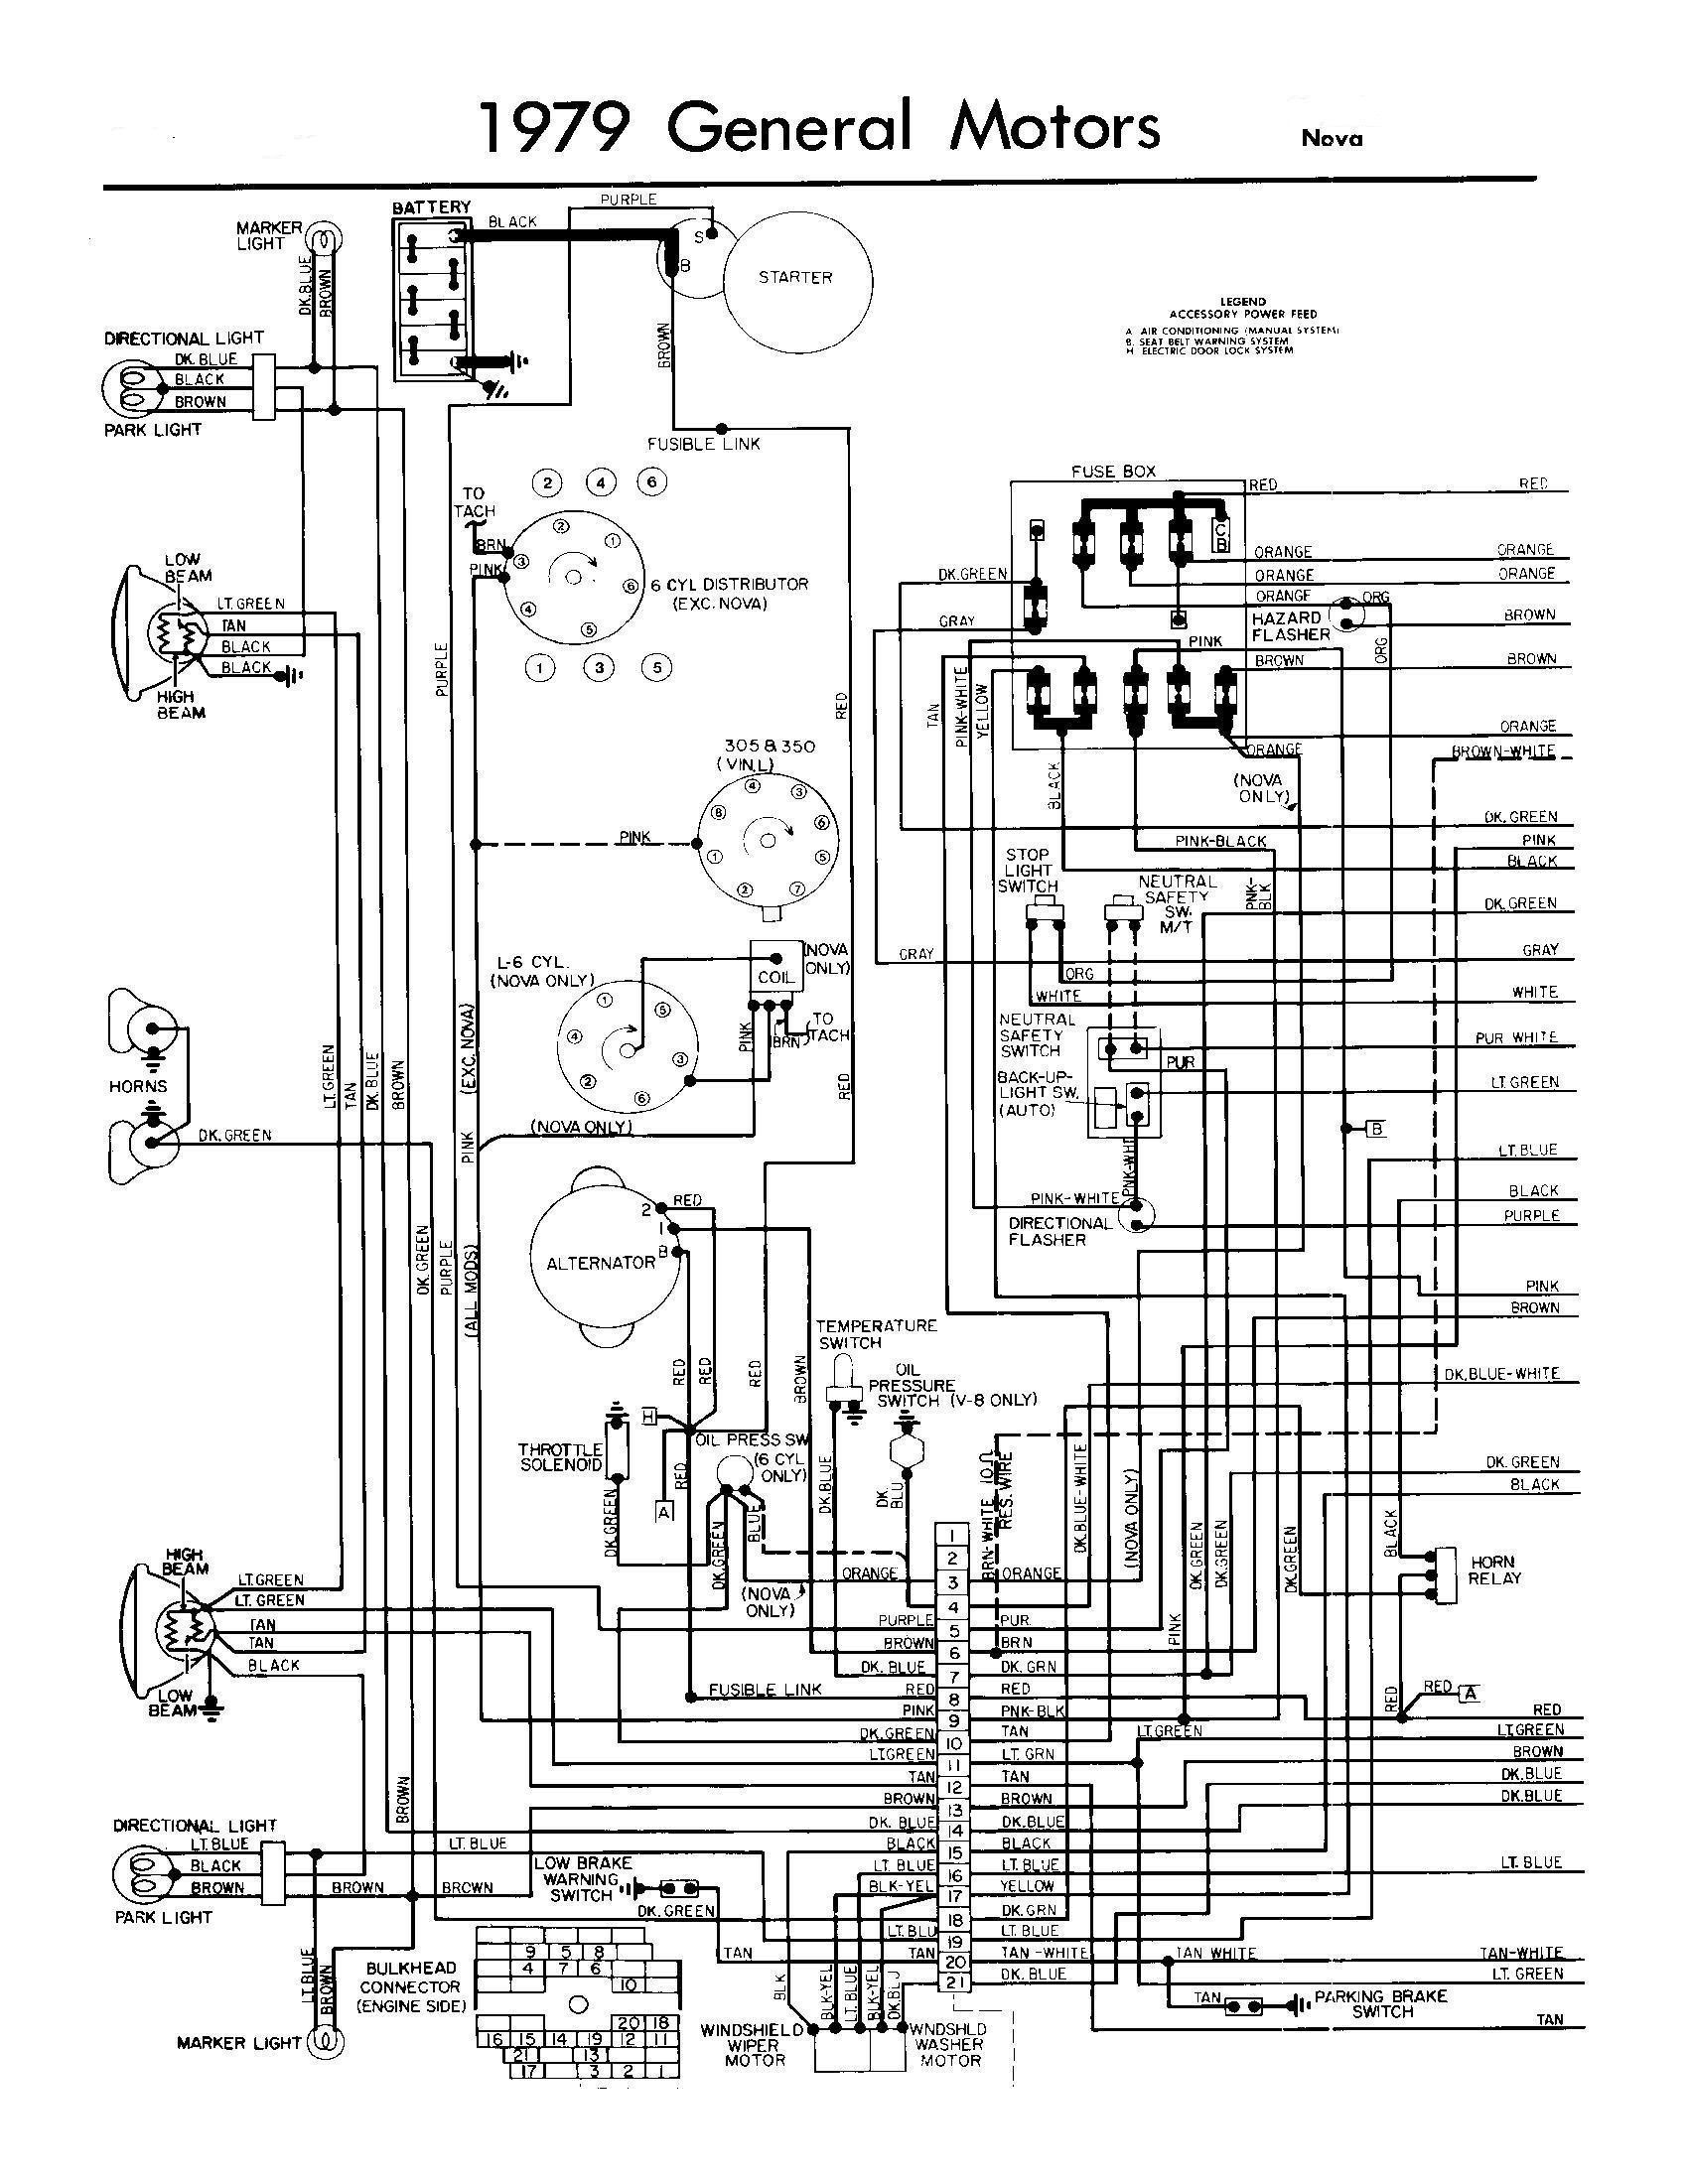 2010 camaro ac diagram data wiring diagrams u2022 rh mikeadkinsguitar com